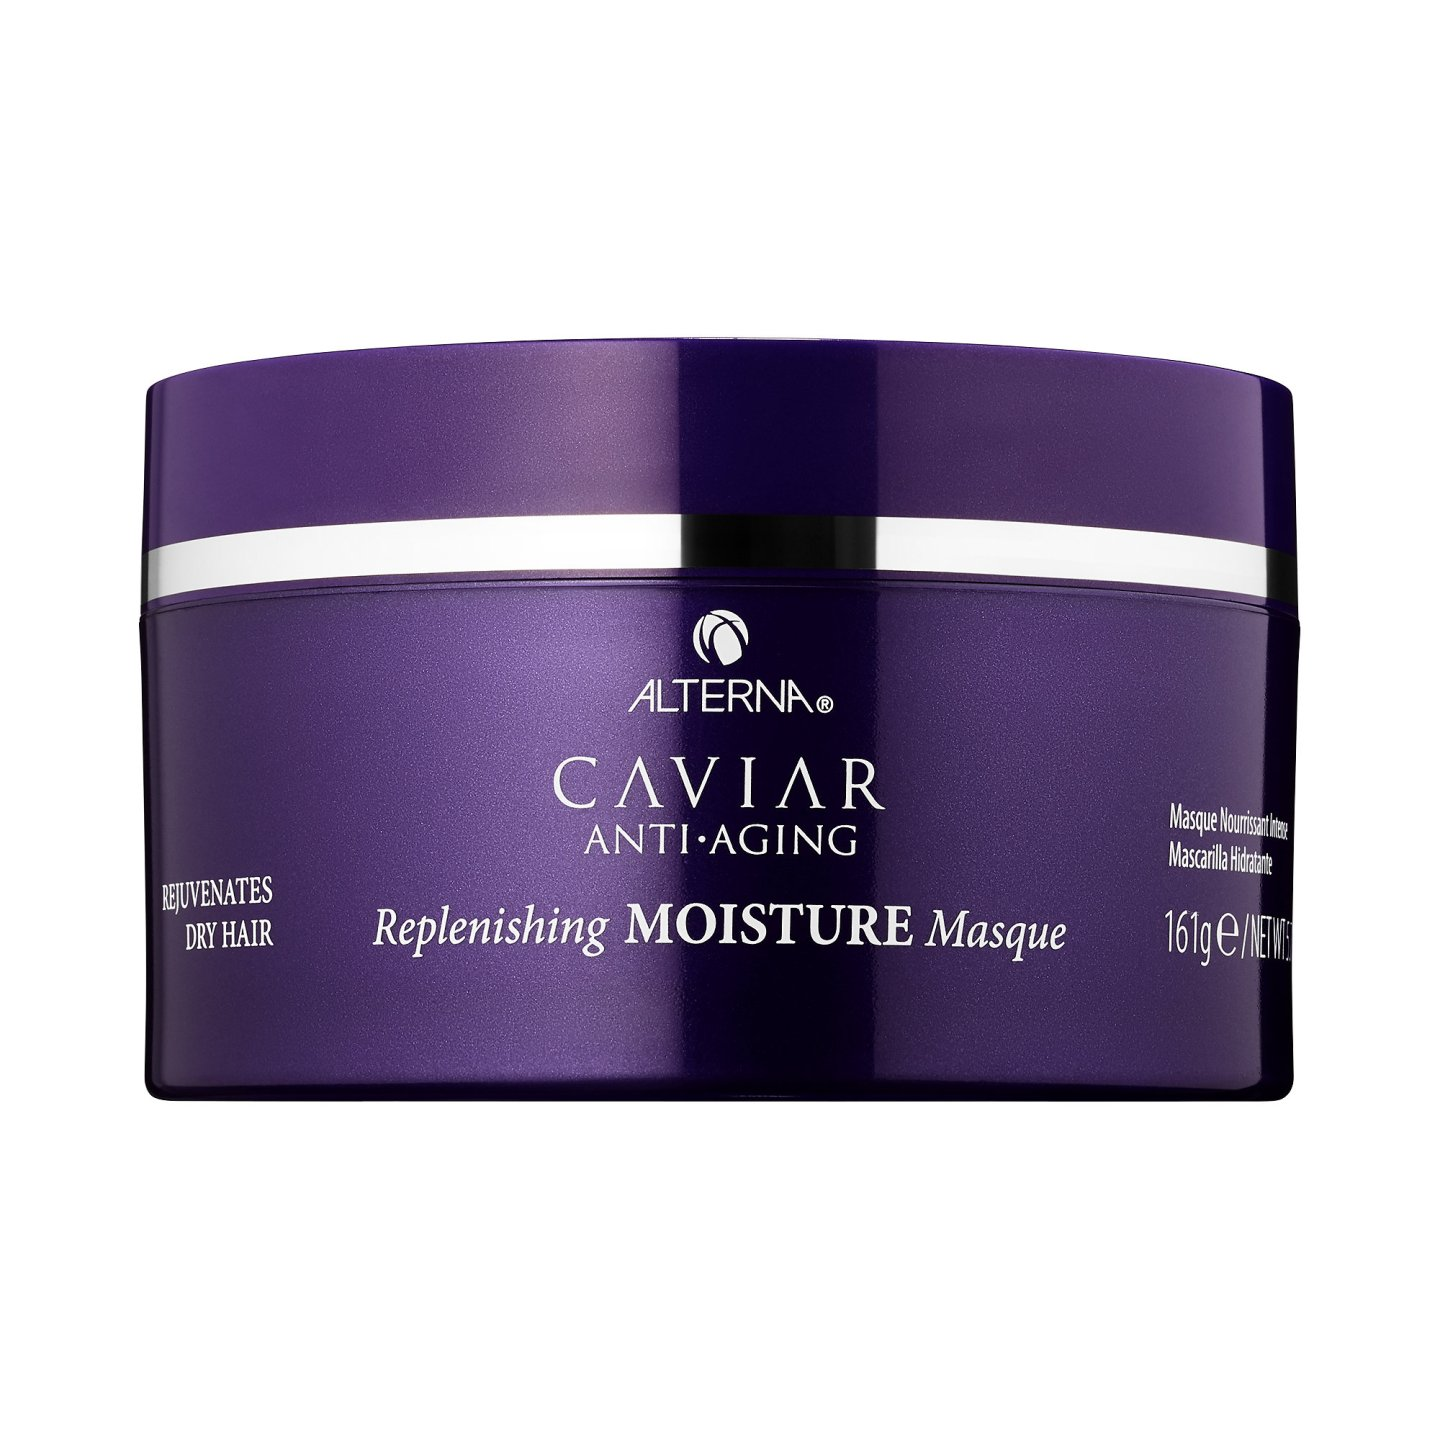 Caviar Hair Mask